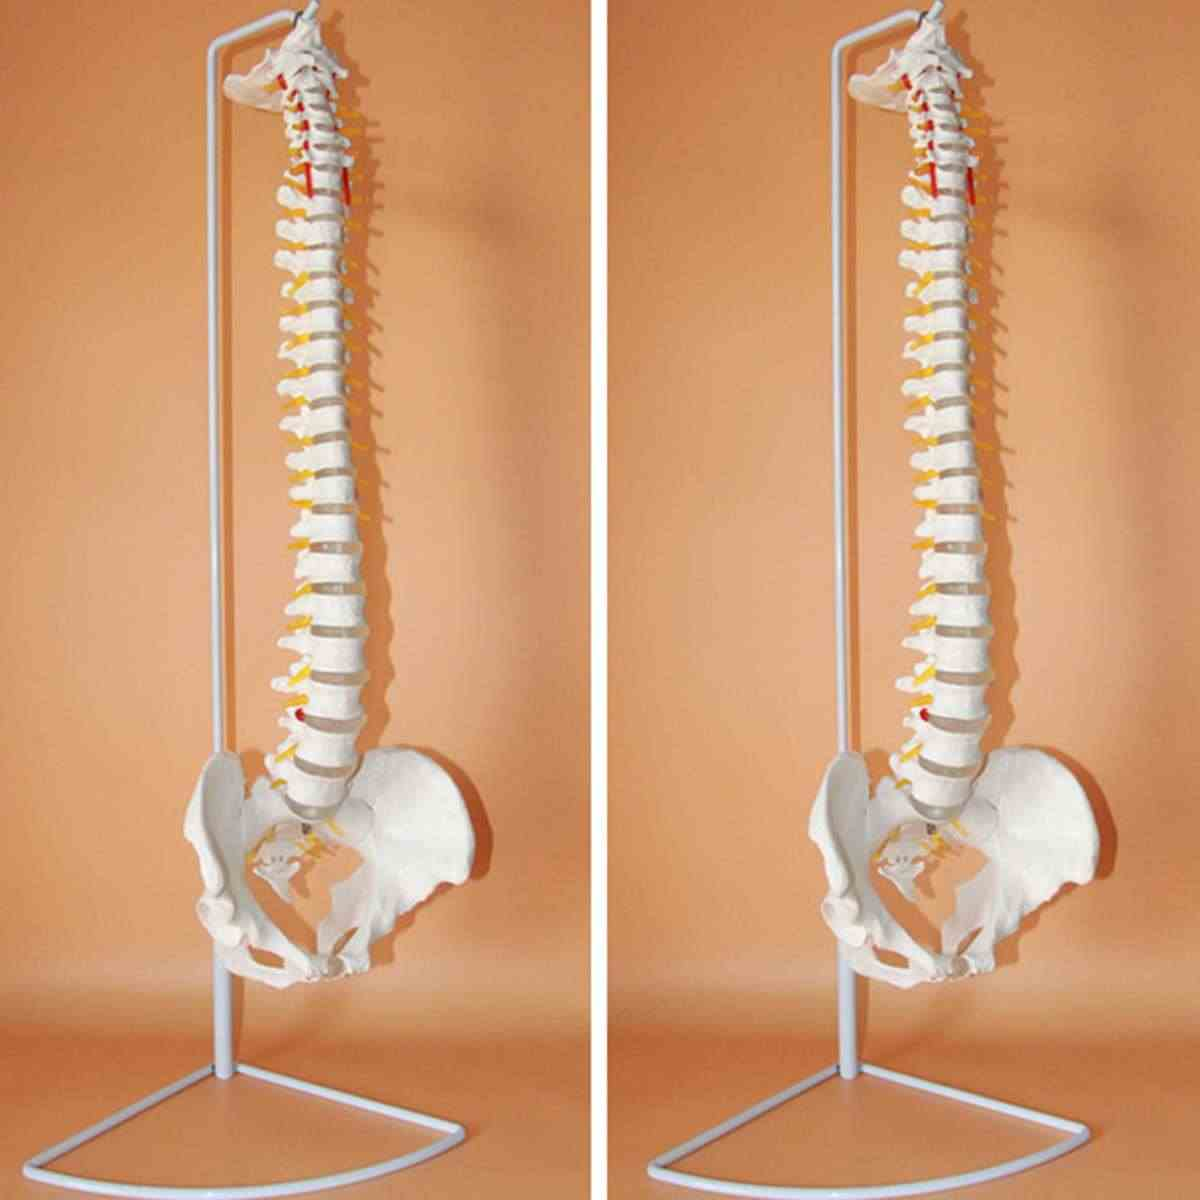 73cm Life Size Flexible Chiropractic Human Spine Anatomical Anatomy Model With Stand School Medical Science Educational Model